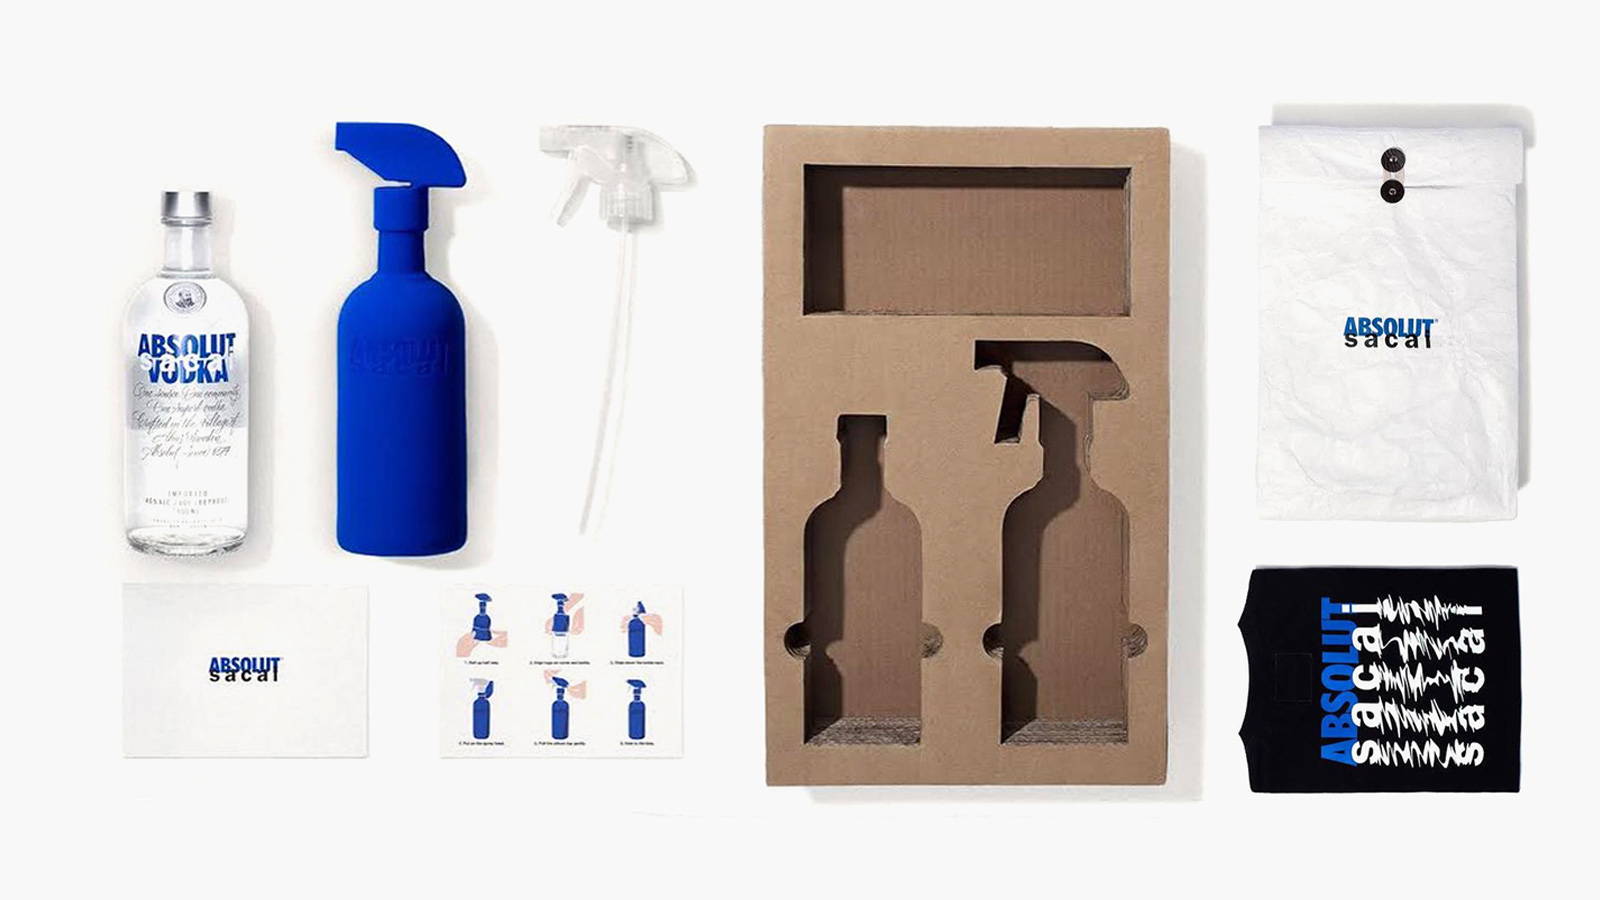 Absolut Vodka x sacai Special Package